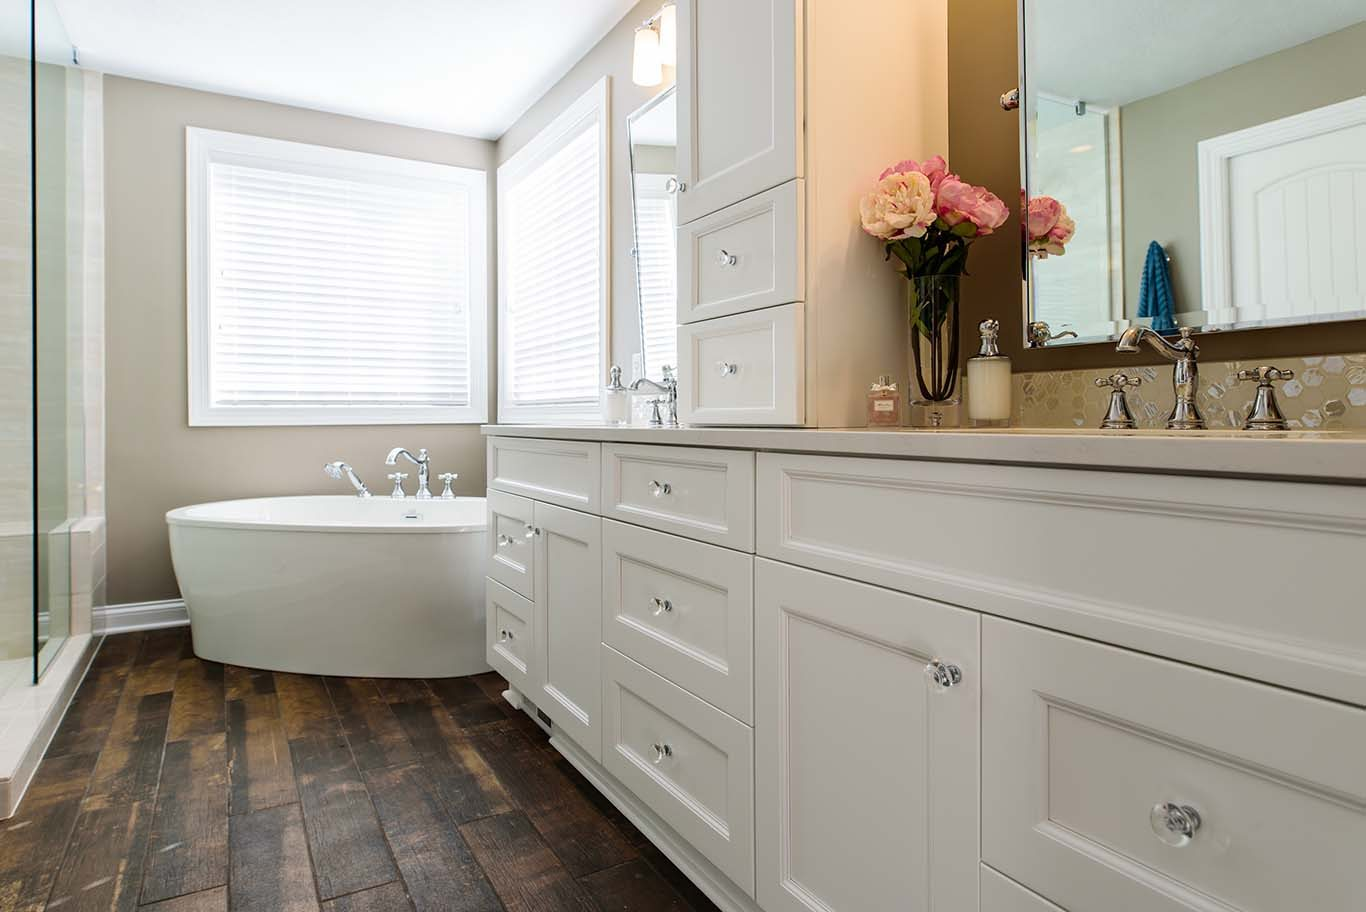 Carol   Greg s Bathroom Remodel in Hudson Ohio. Hudson Remodeling Contractor for Kitchens  Bathrooms   More